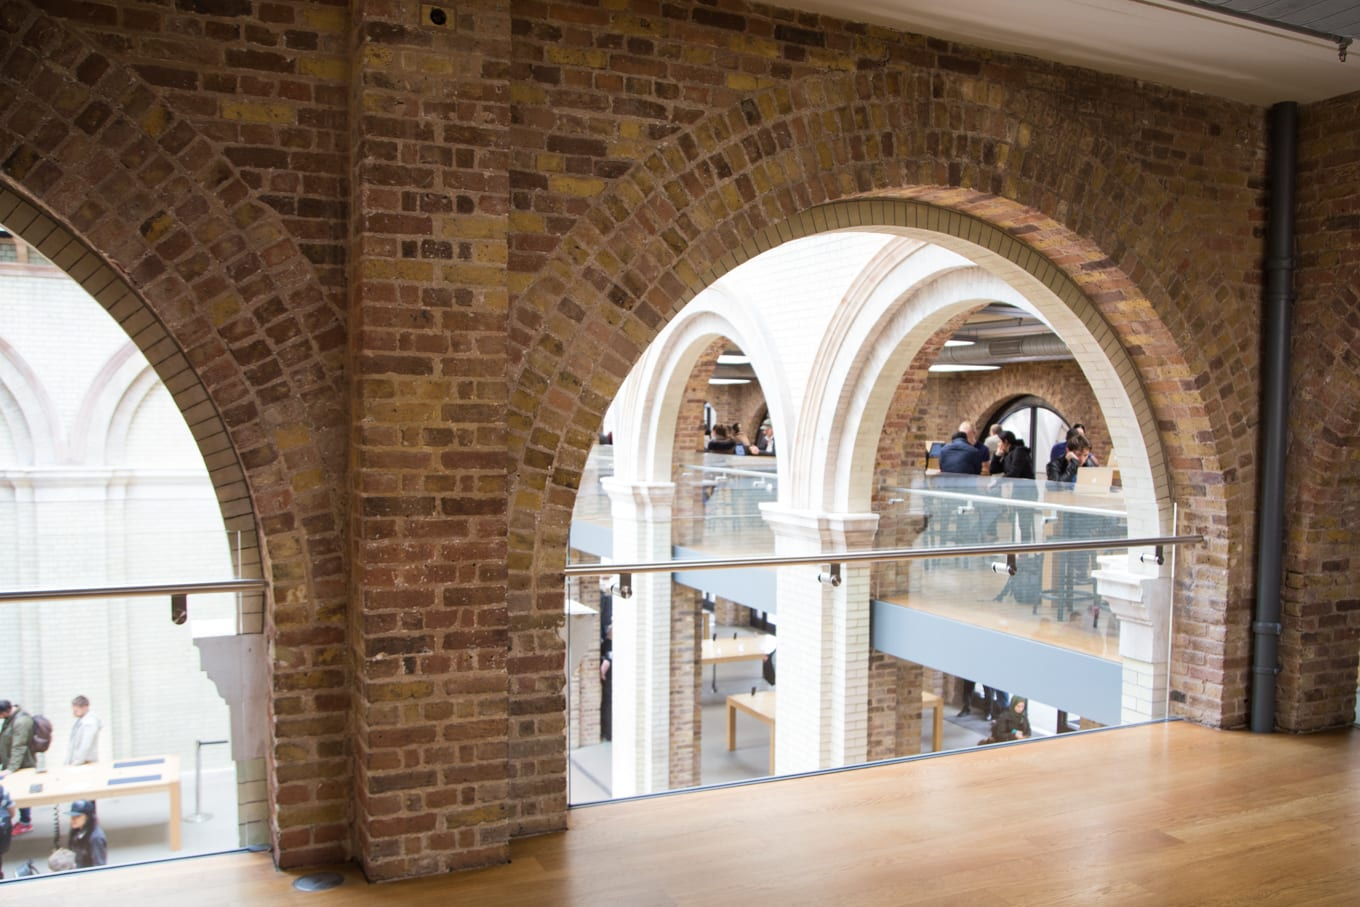 Interior architecture photo of the Apple Store at Covent Garden, London UK